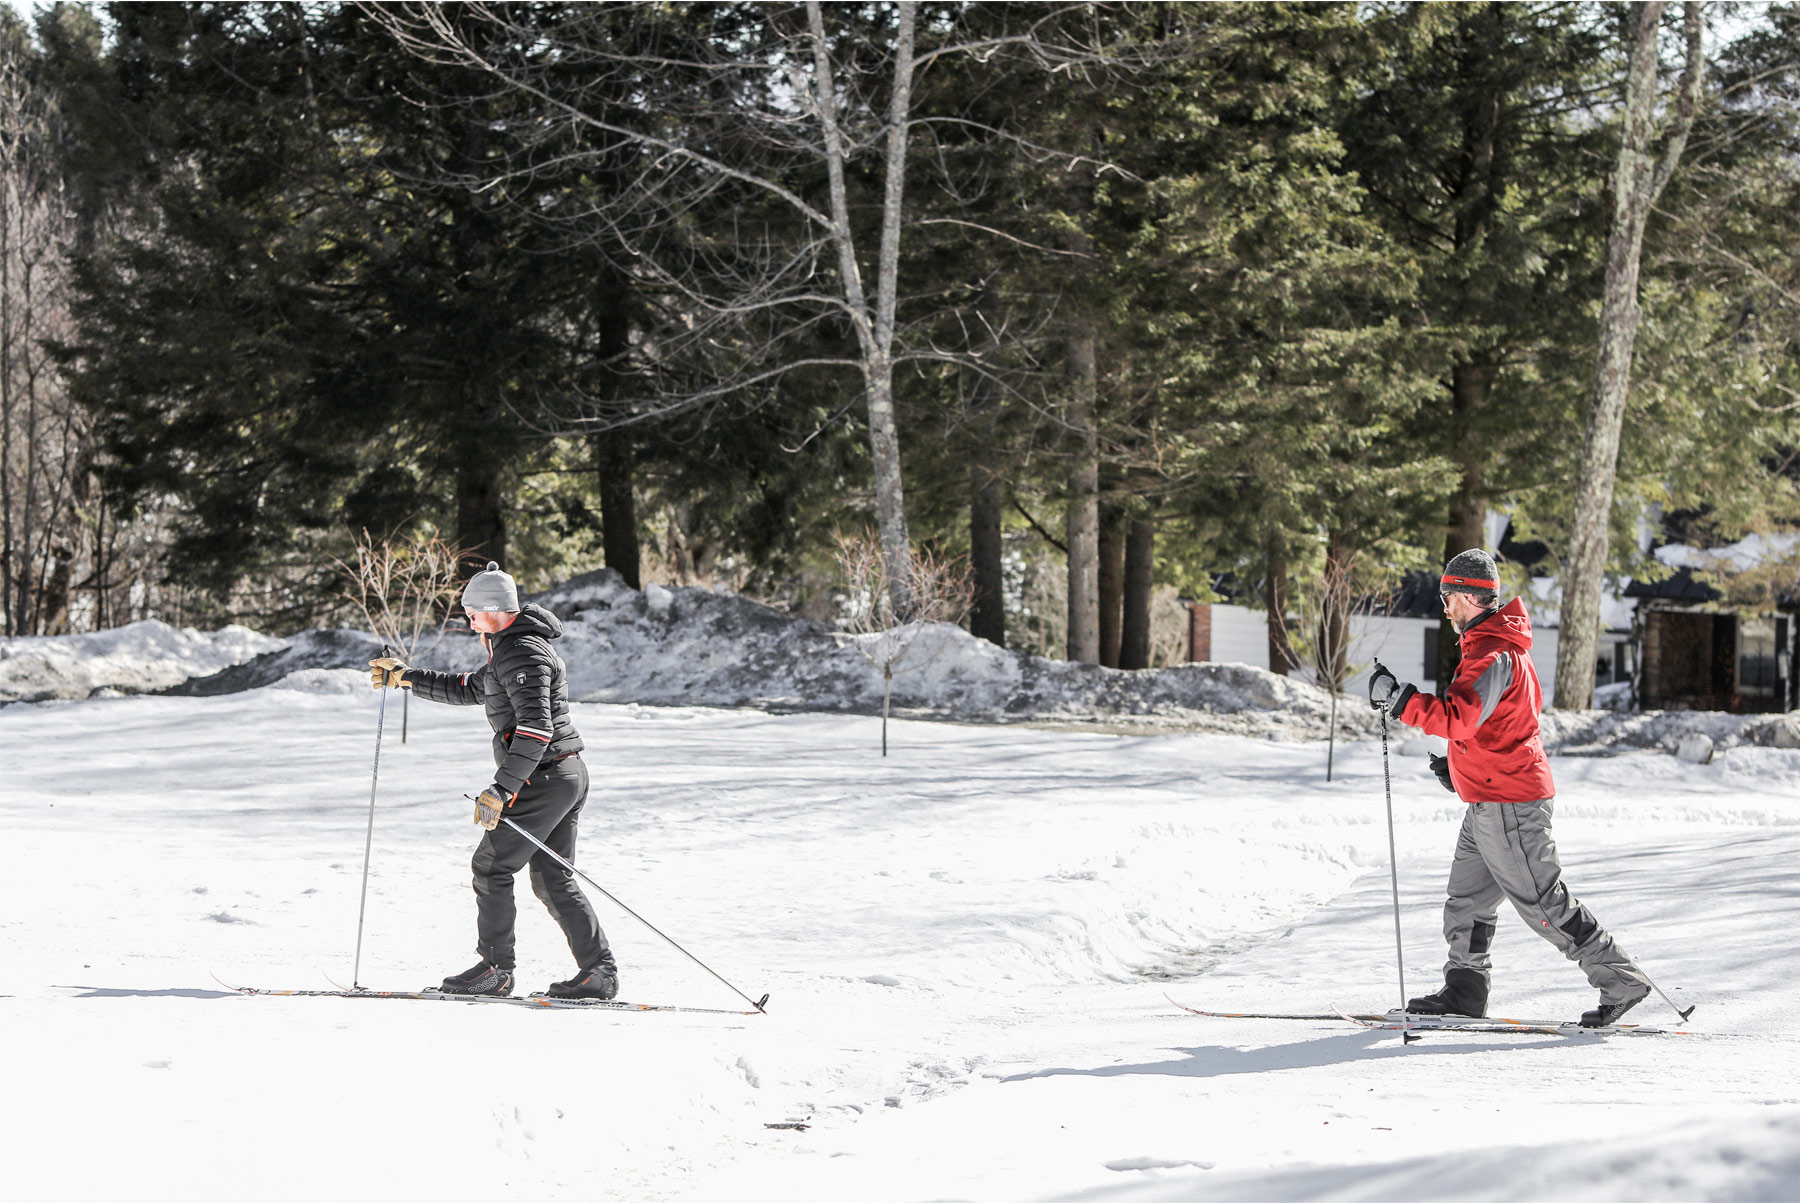 11-Stowe-Vermont-by-Andrew-Vick-Photography-Edson-Hill-Winter-Lodge-Cross-Country-Skiing.jpg